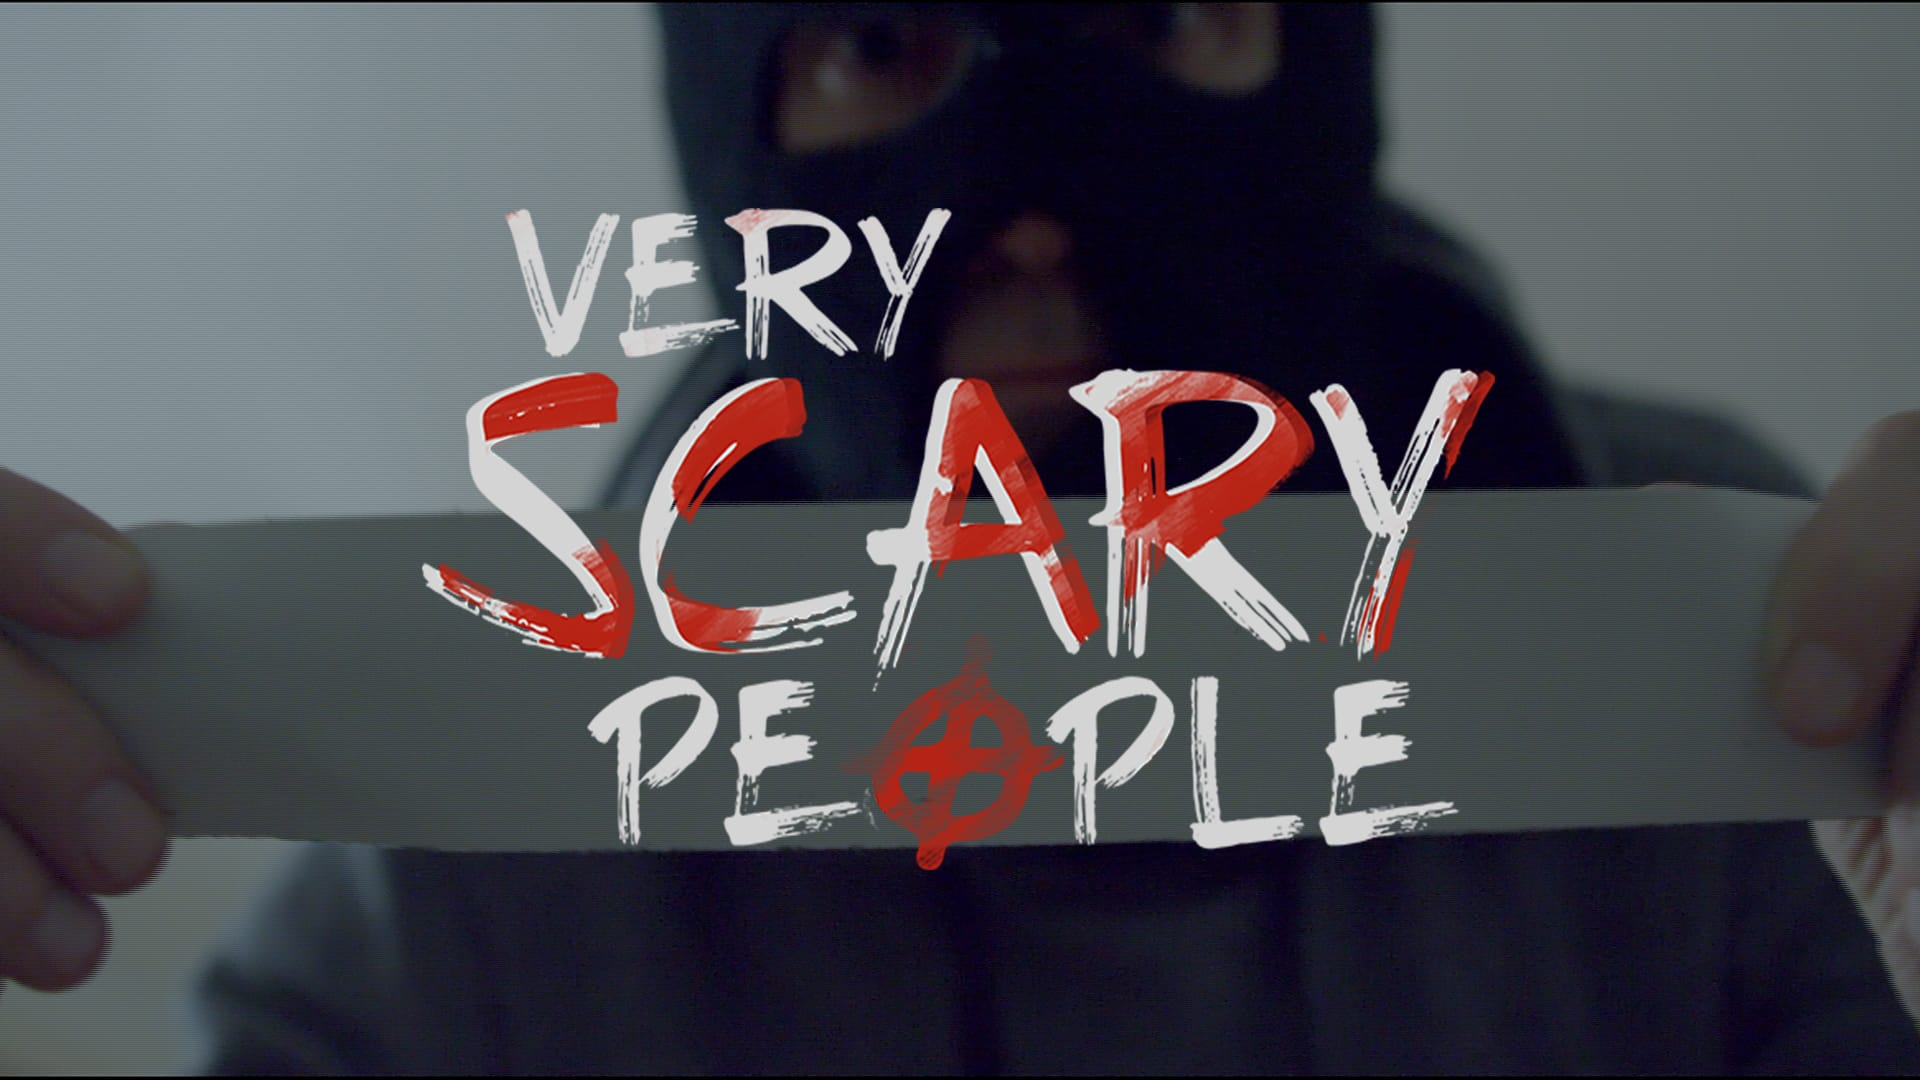 very scary people cnn